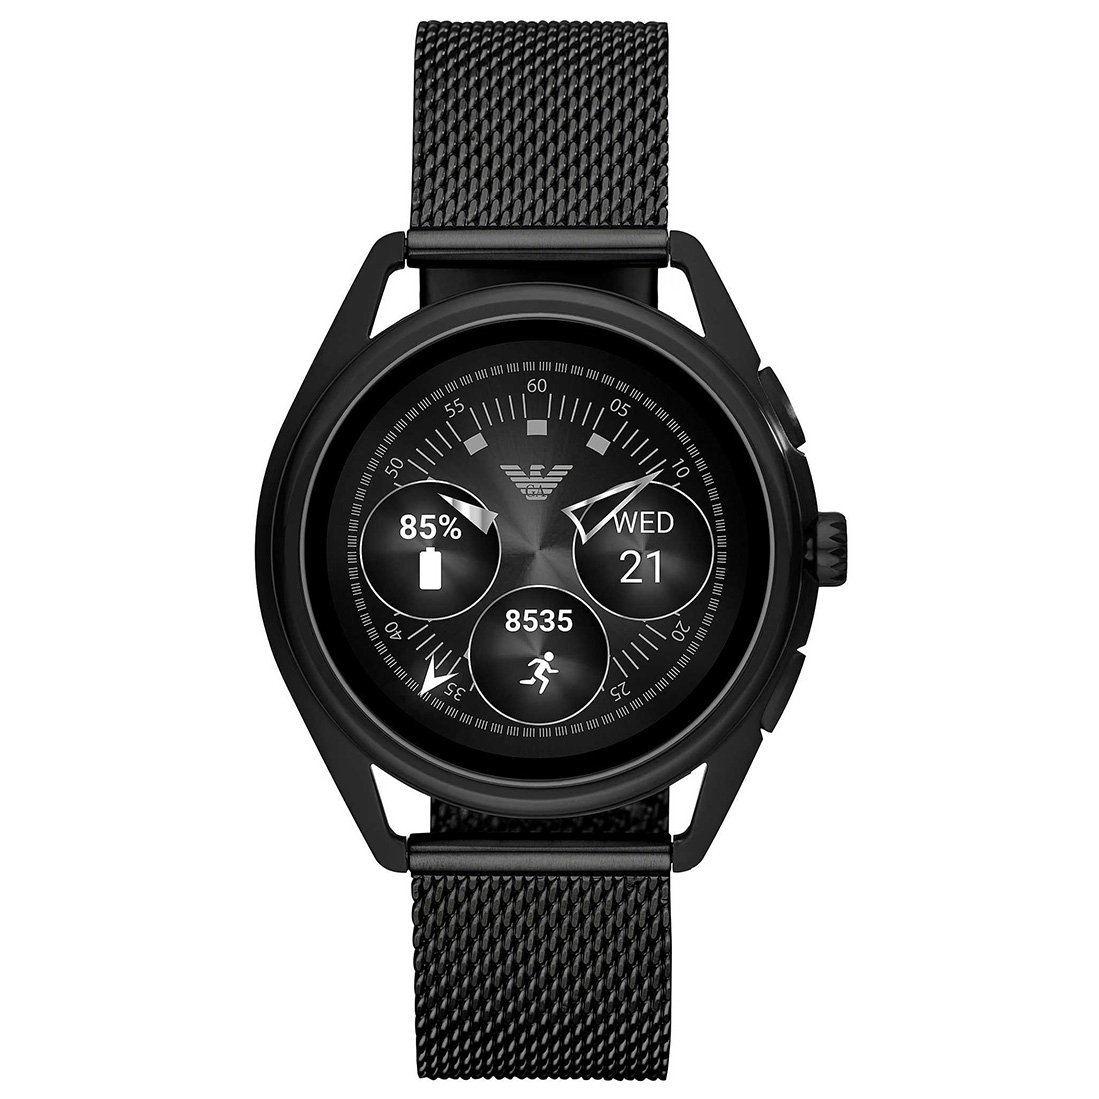 Smartwatch Emporio Armani - Matteo Art5019 Black imagine